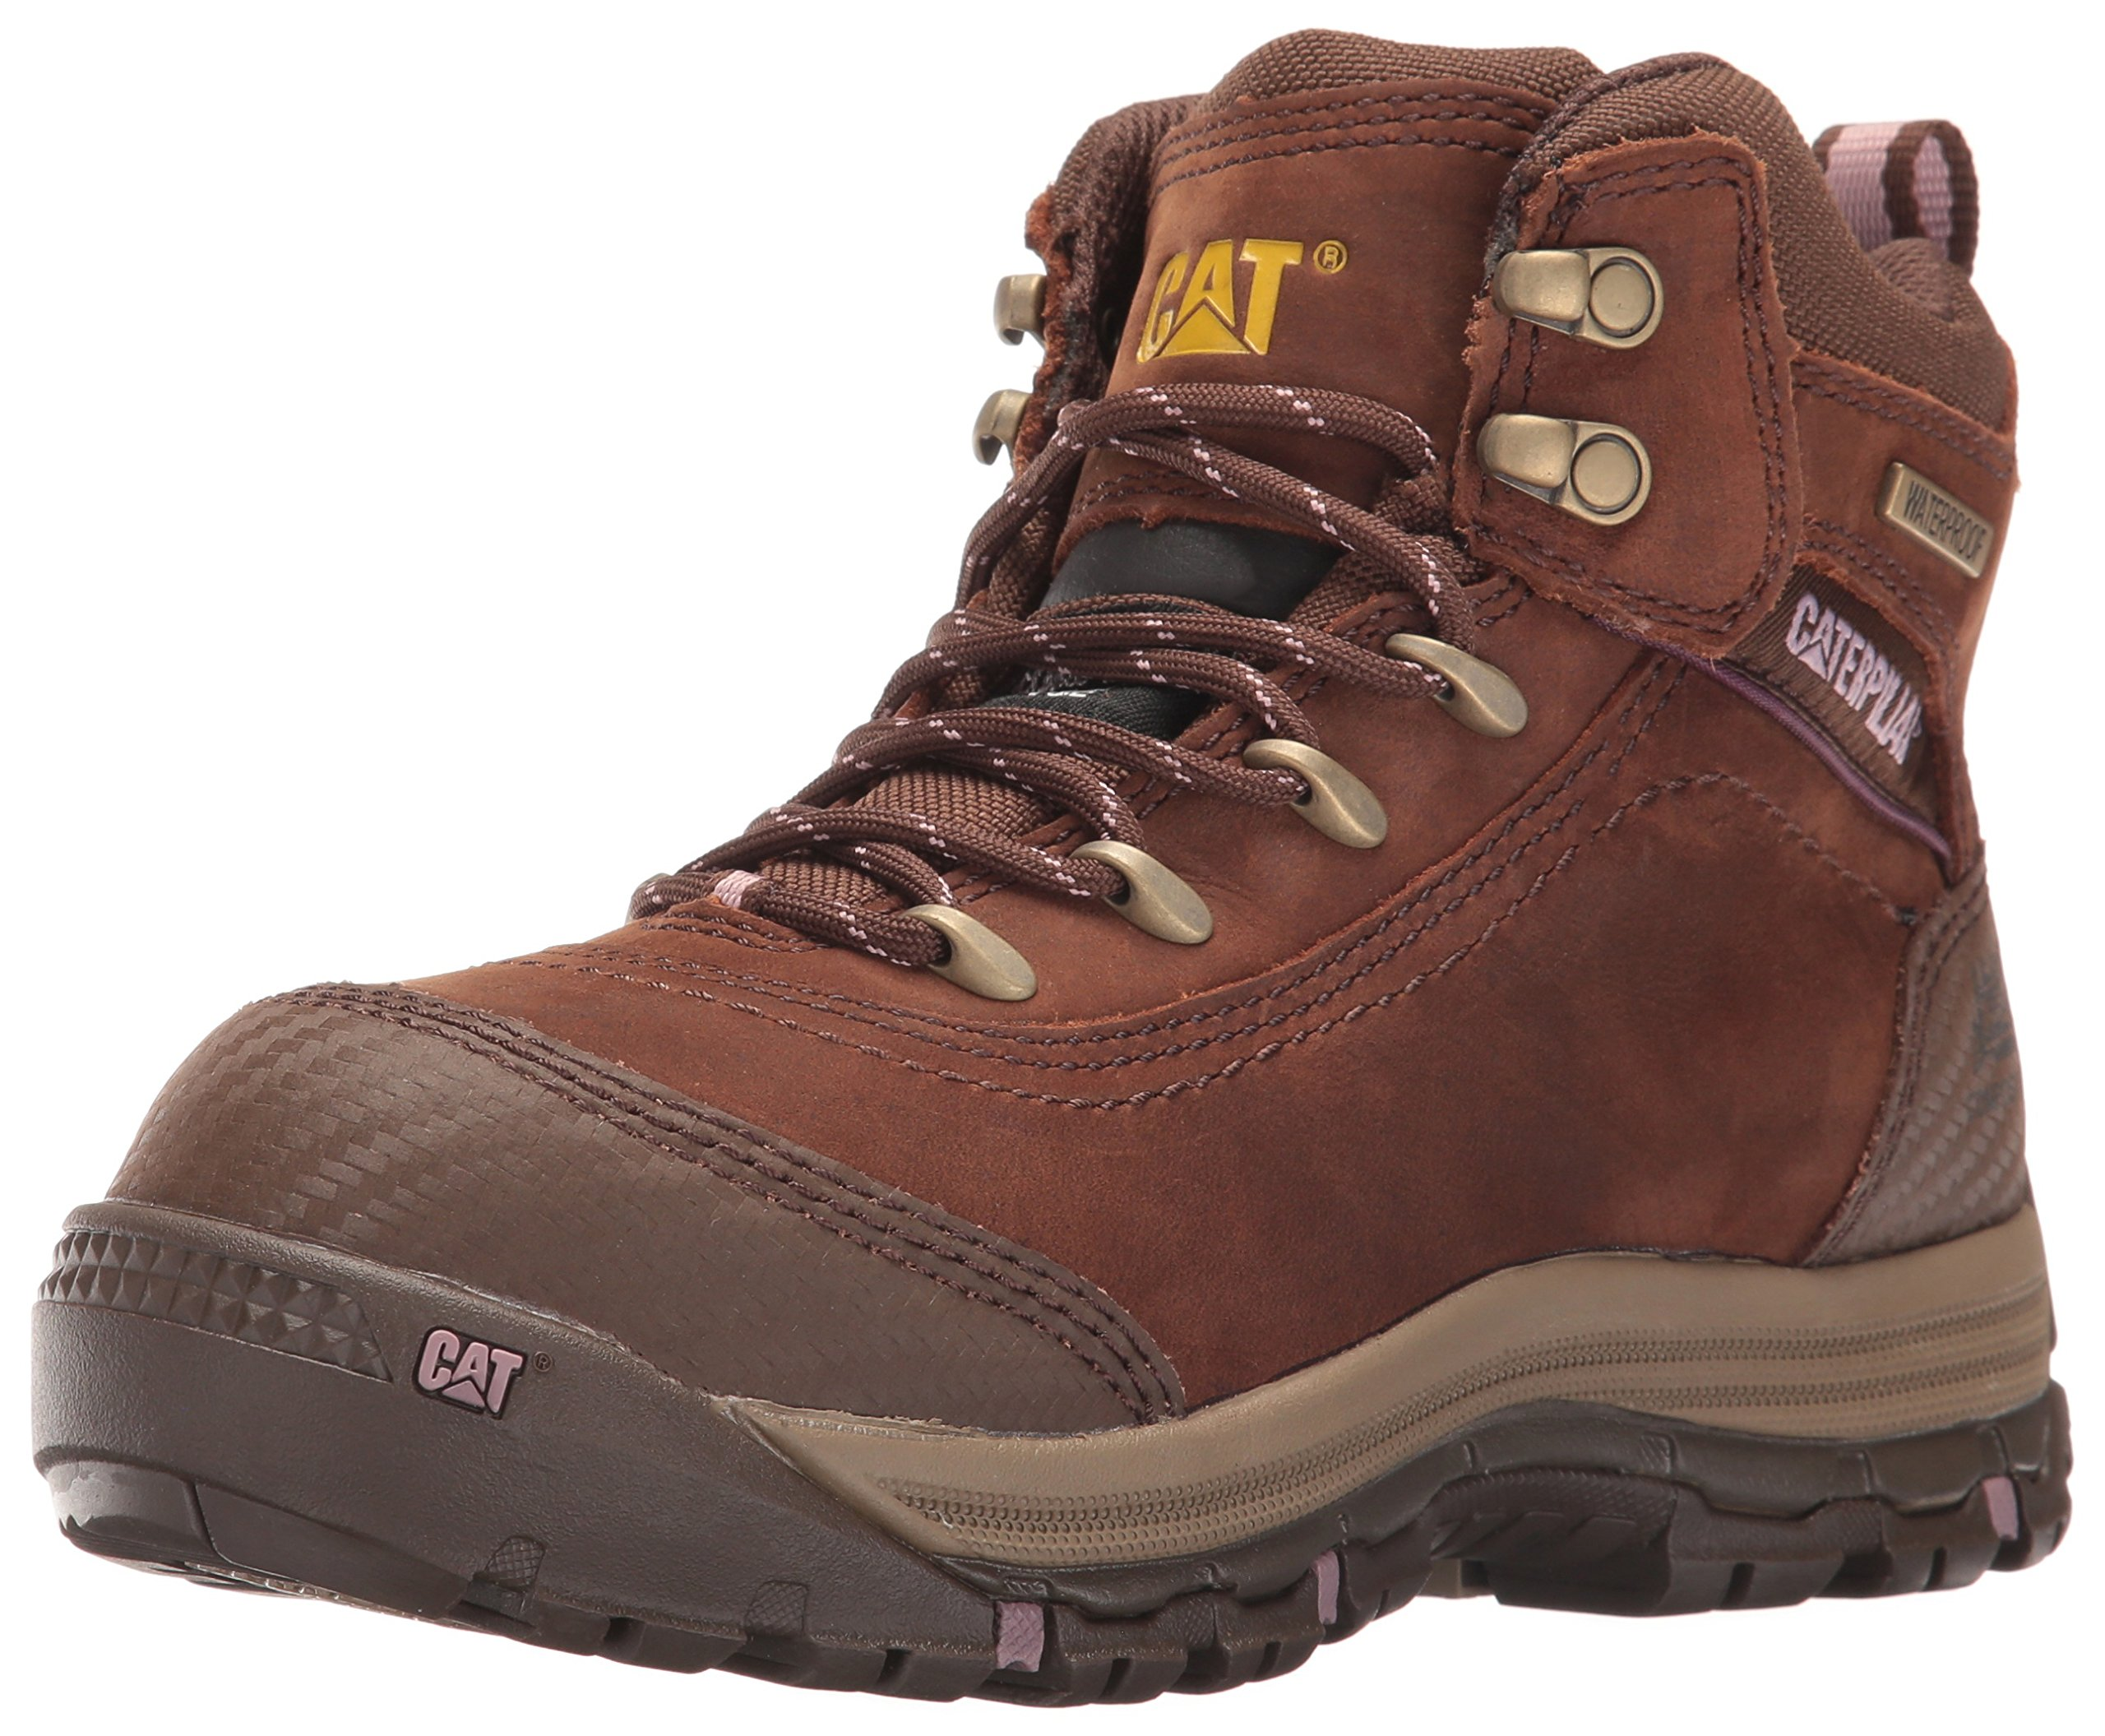 Caterpillar Women's Ally 6'' Waterproof Comp Toe Industrial and Construction Shoe, Brown, 6.5 M US